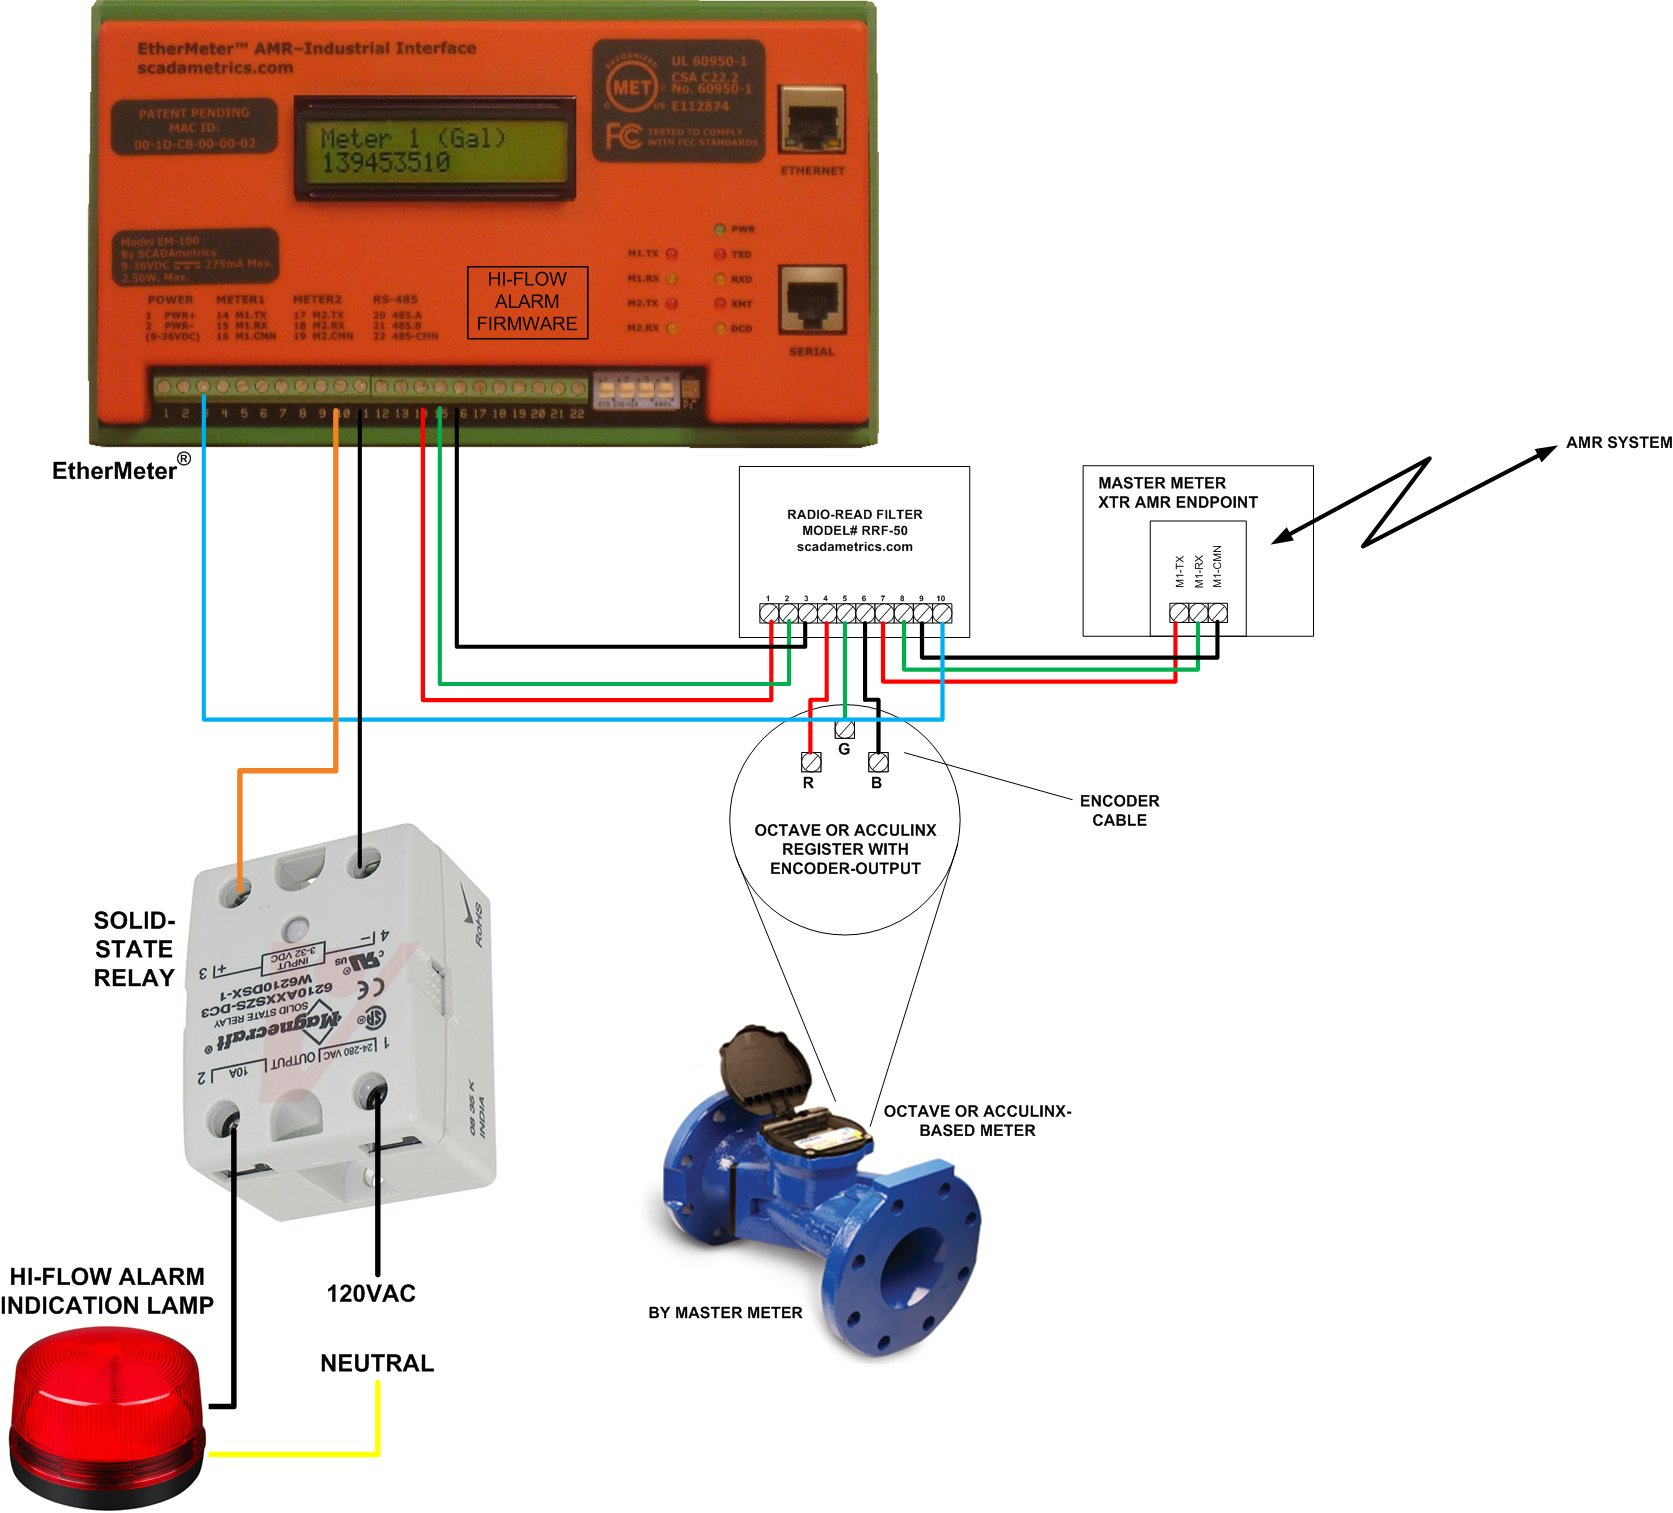 hight resolution of water flow meter wiring diagrams data diagram schematicgas pulse meter wiring diagram wiring diagrams water flow